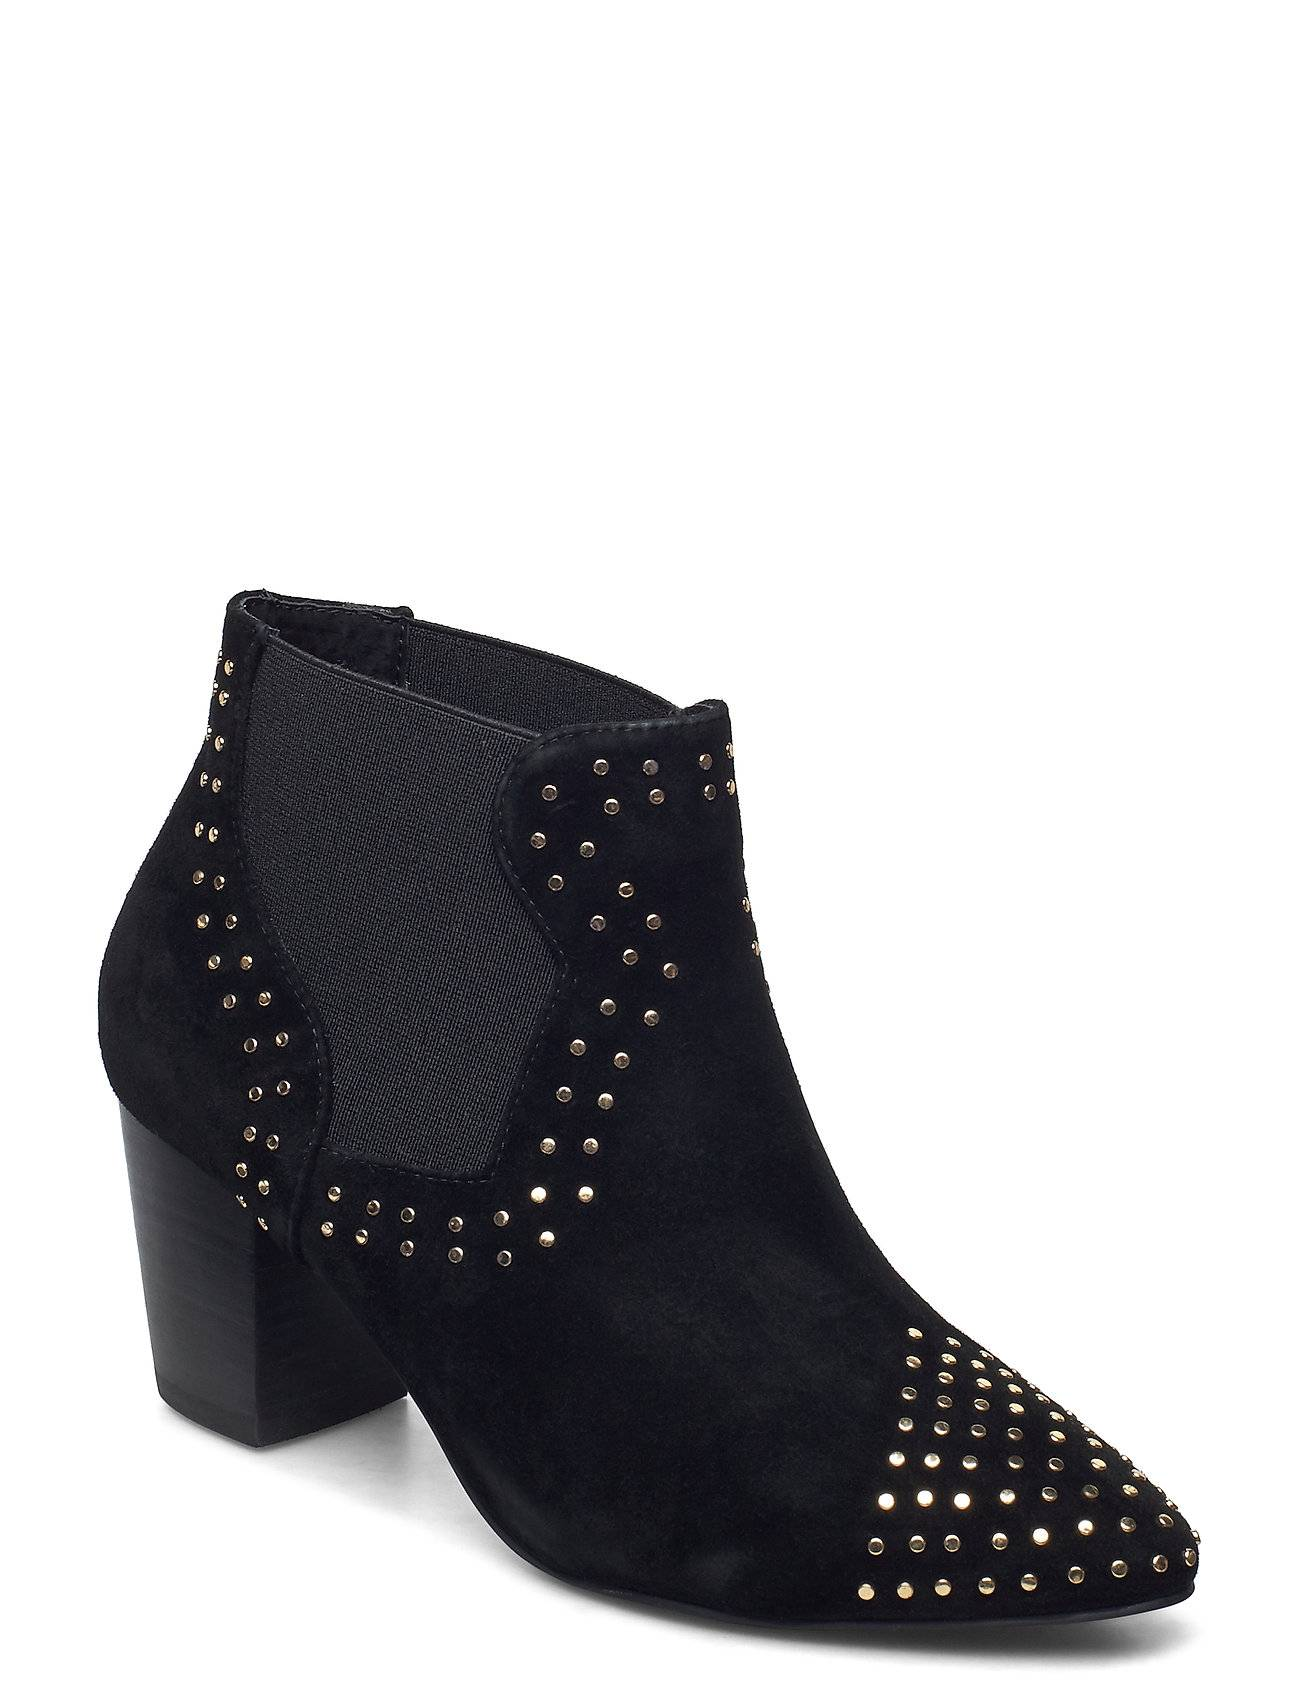 Shoe The Bear Stb-Toro Studs Shoes Boots Ankle Boots Ankle Boot - Heel Musta Shoe The Bear